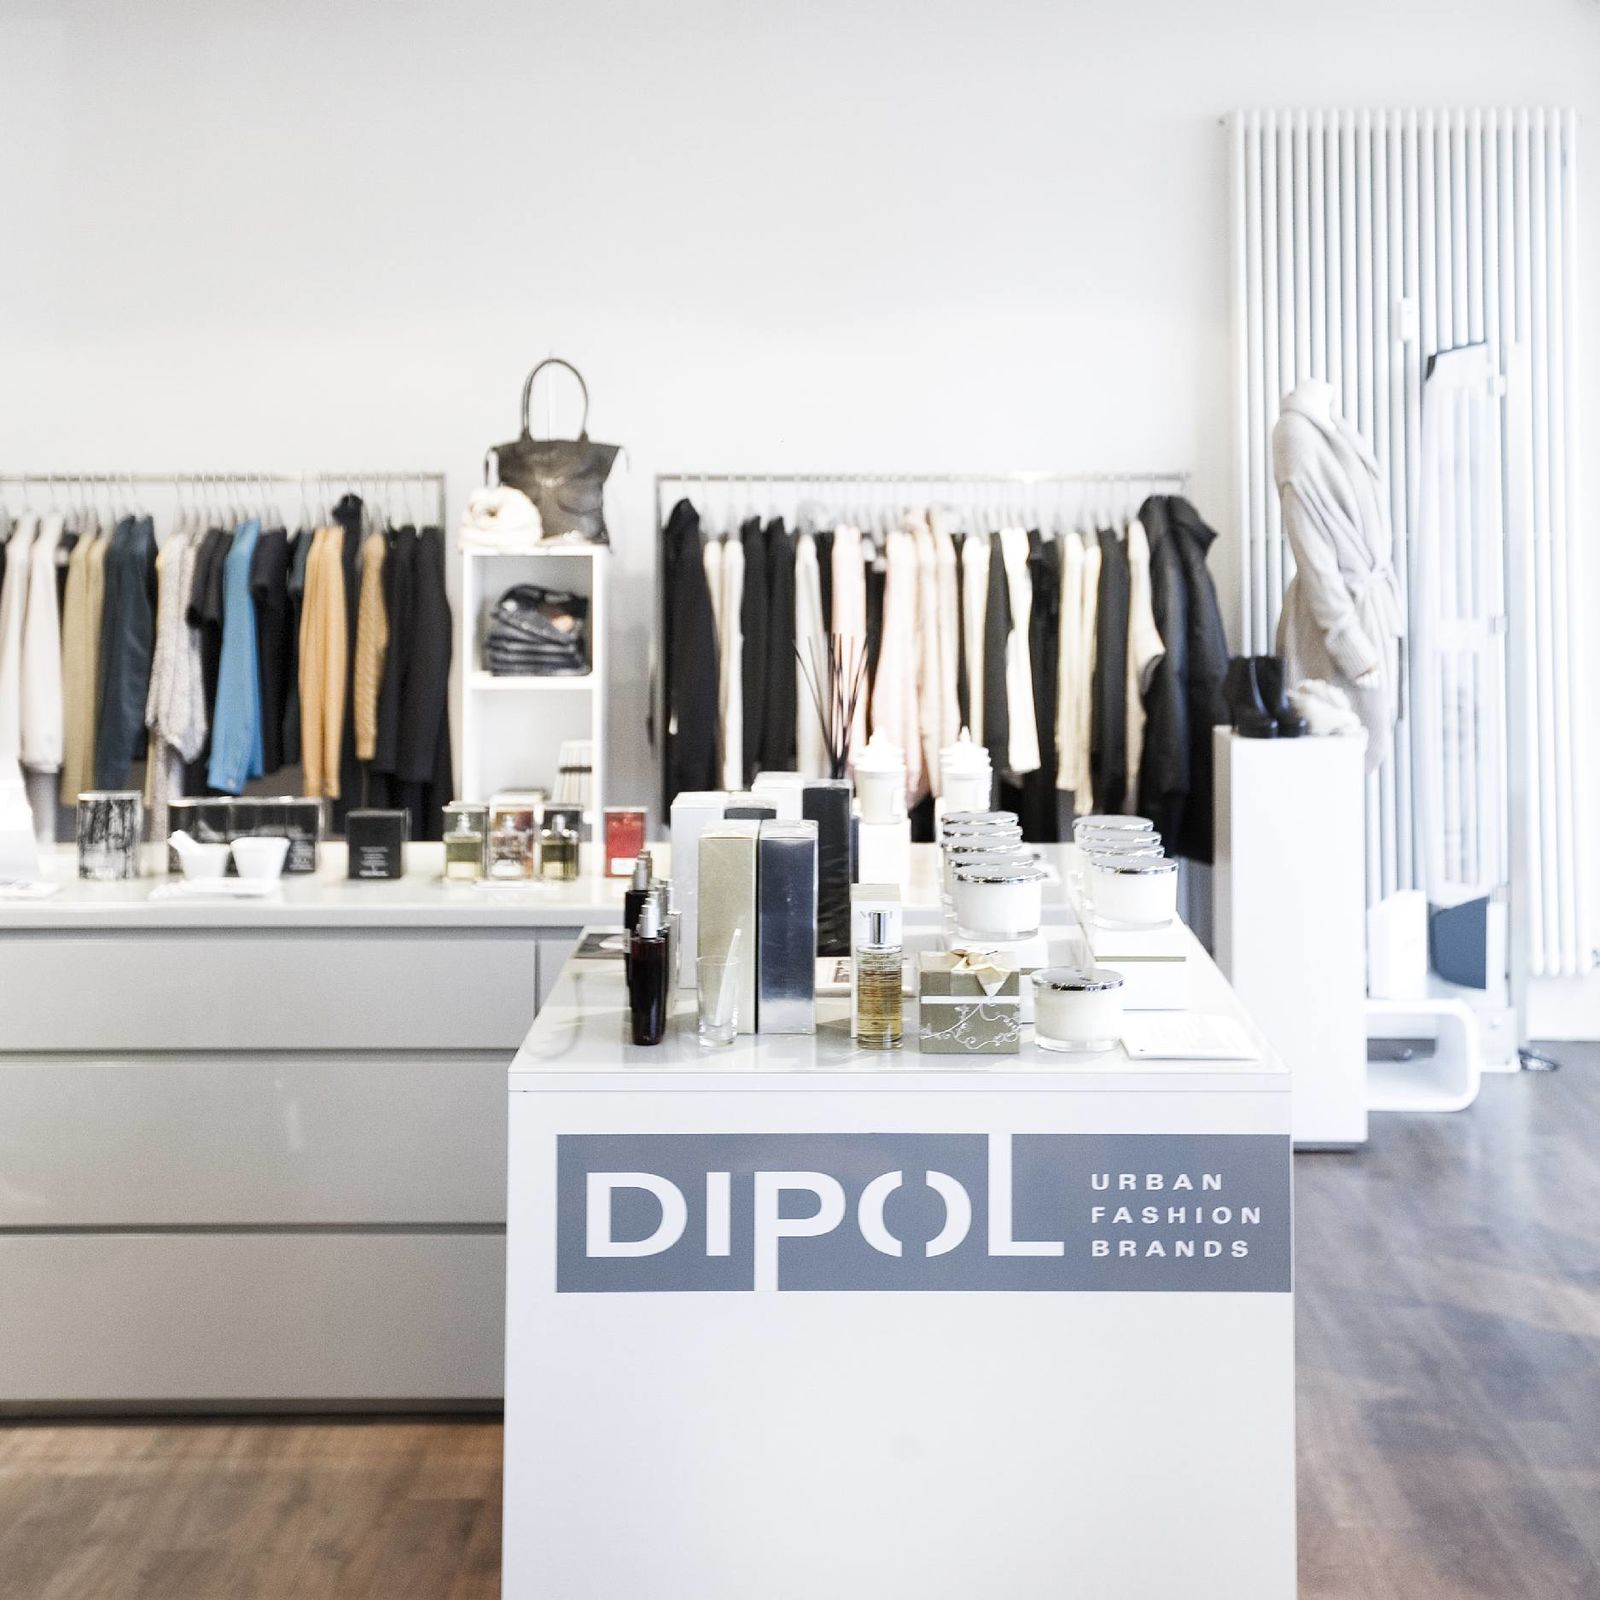 dipol - urban fashion brands in Mannheim (Bild 18)